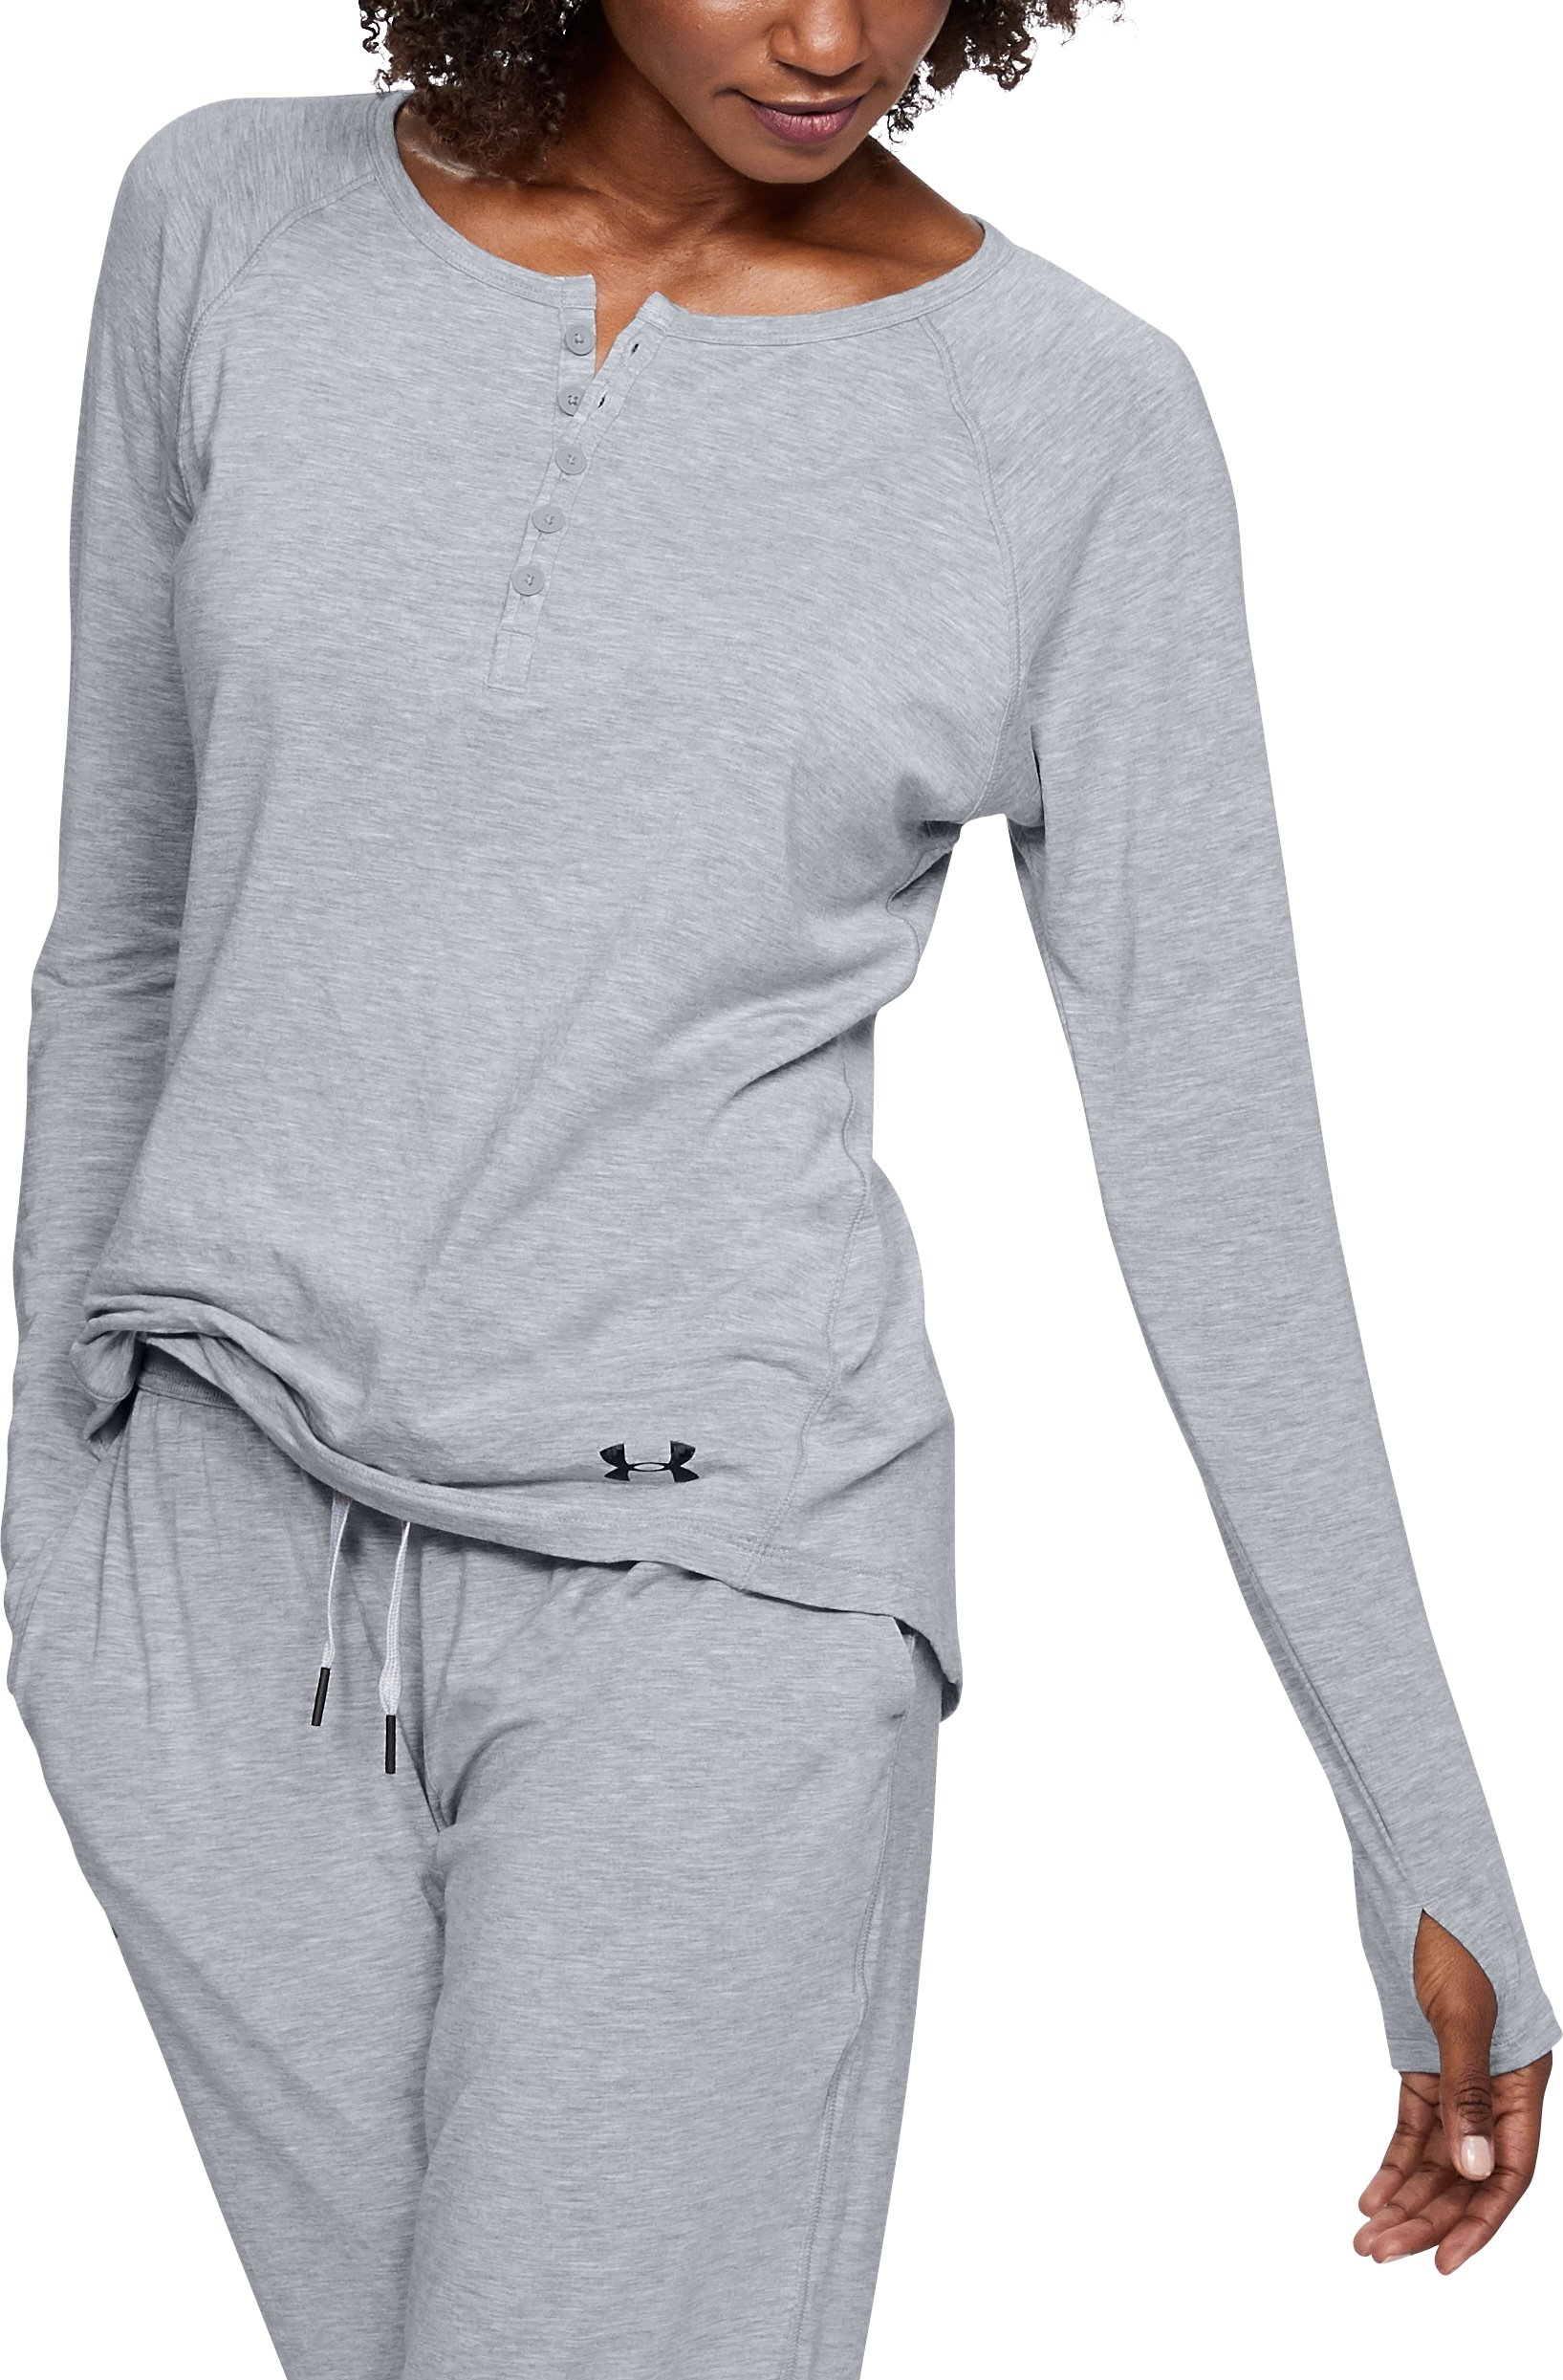 Women's Athlete Recovery Ultra Comfort Sleepwear Henley, True Gray Heather